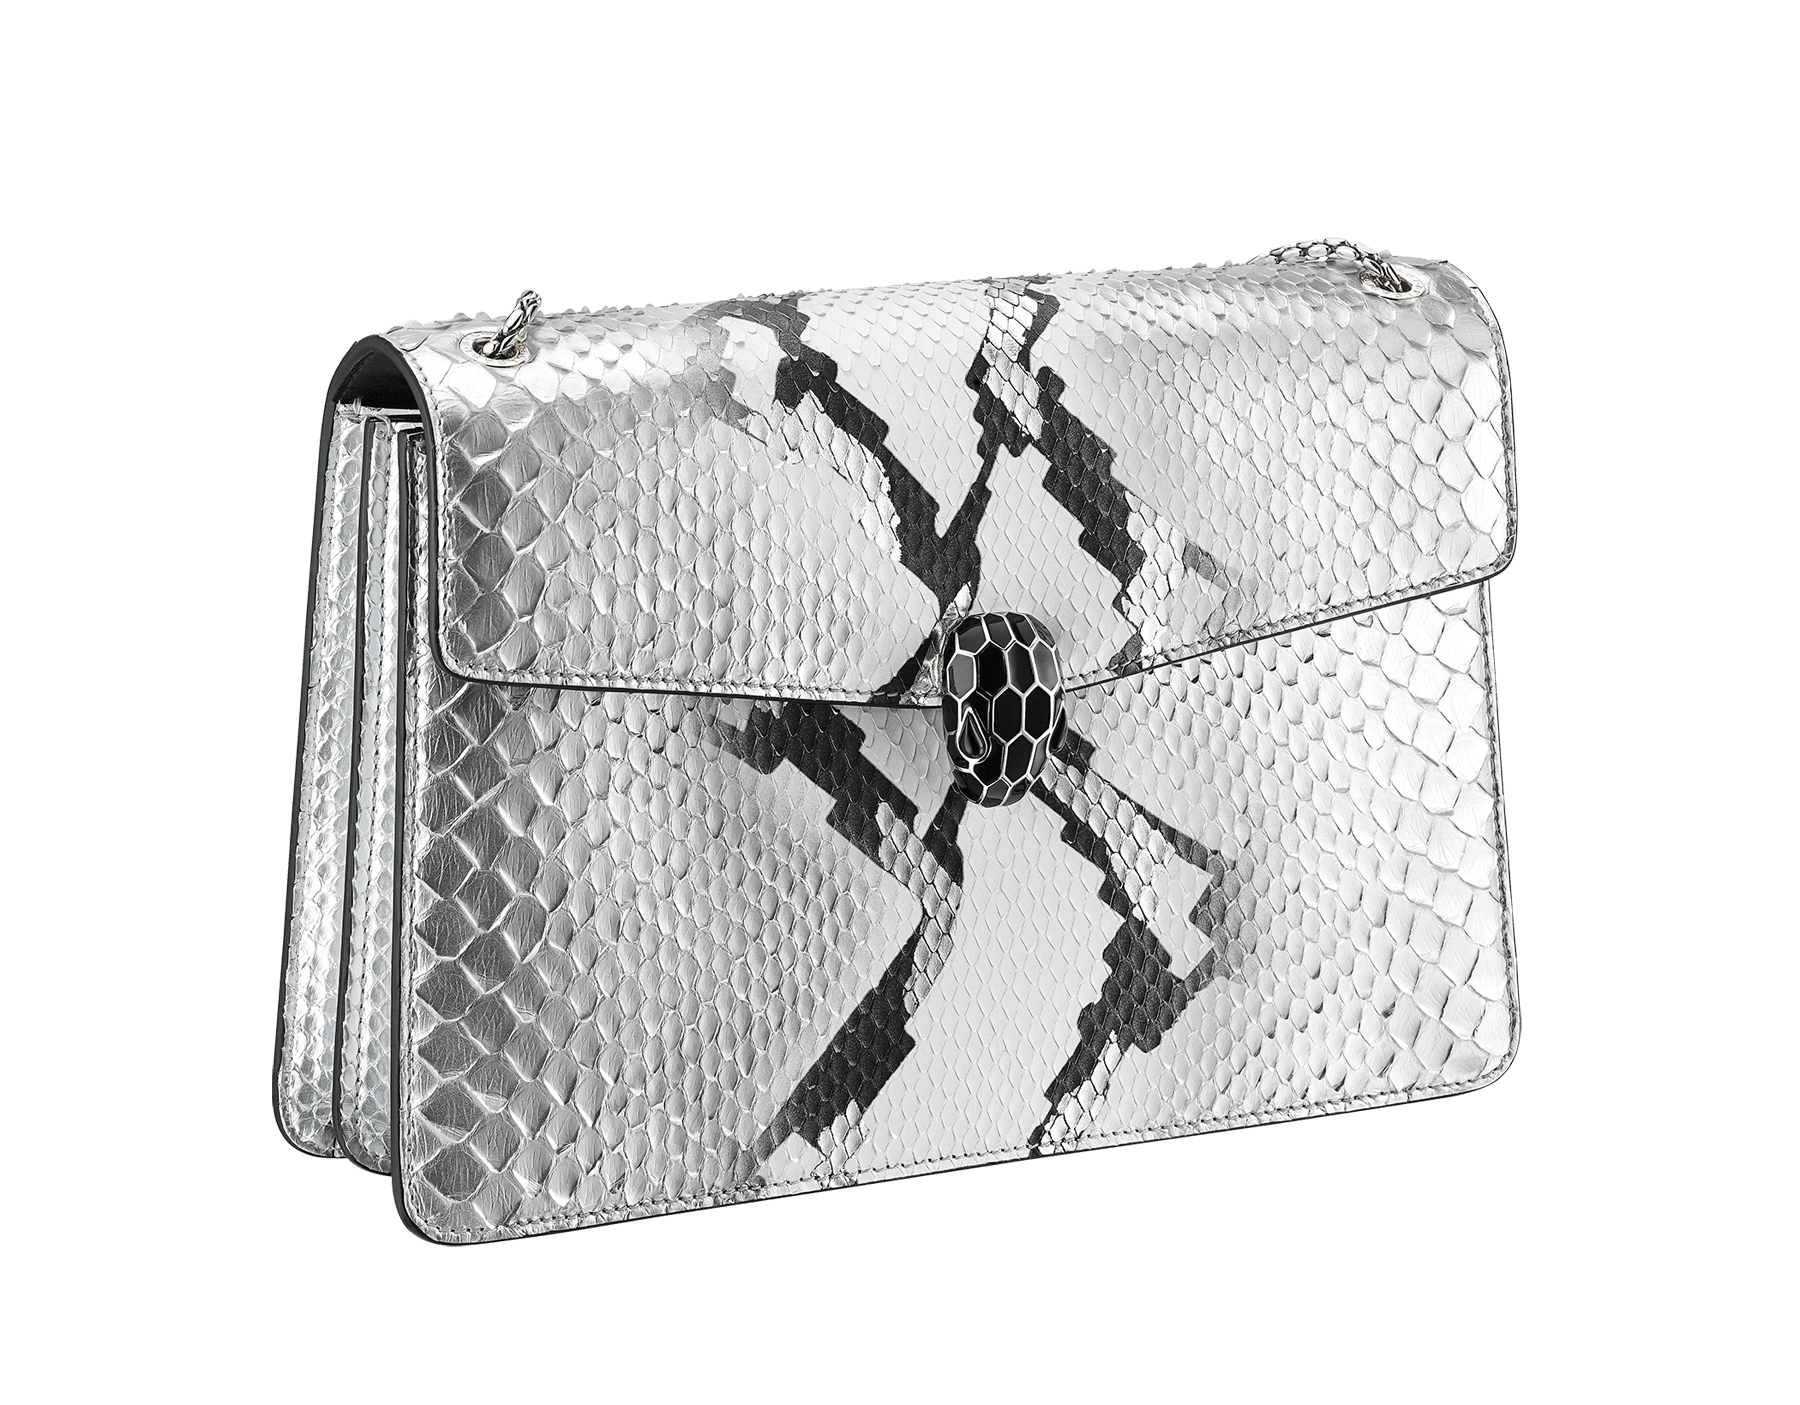 Serpenti Forever shoulder bag in black and white python skin with Whitethunder motif. Snakehead closure in shiny palladium plated brass decorated with black enamel, and black onyx eyes. 521-Pb image 2